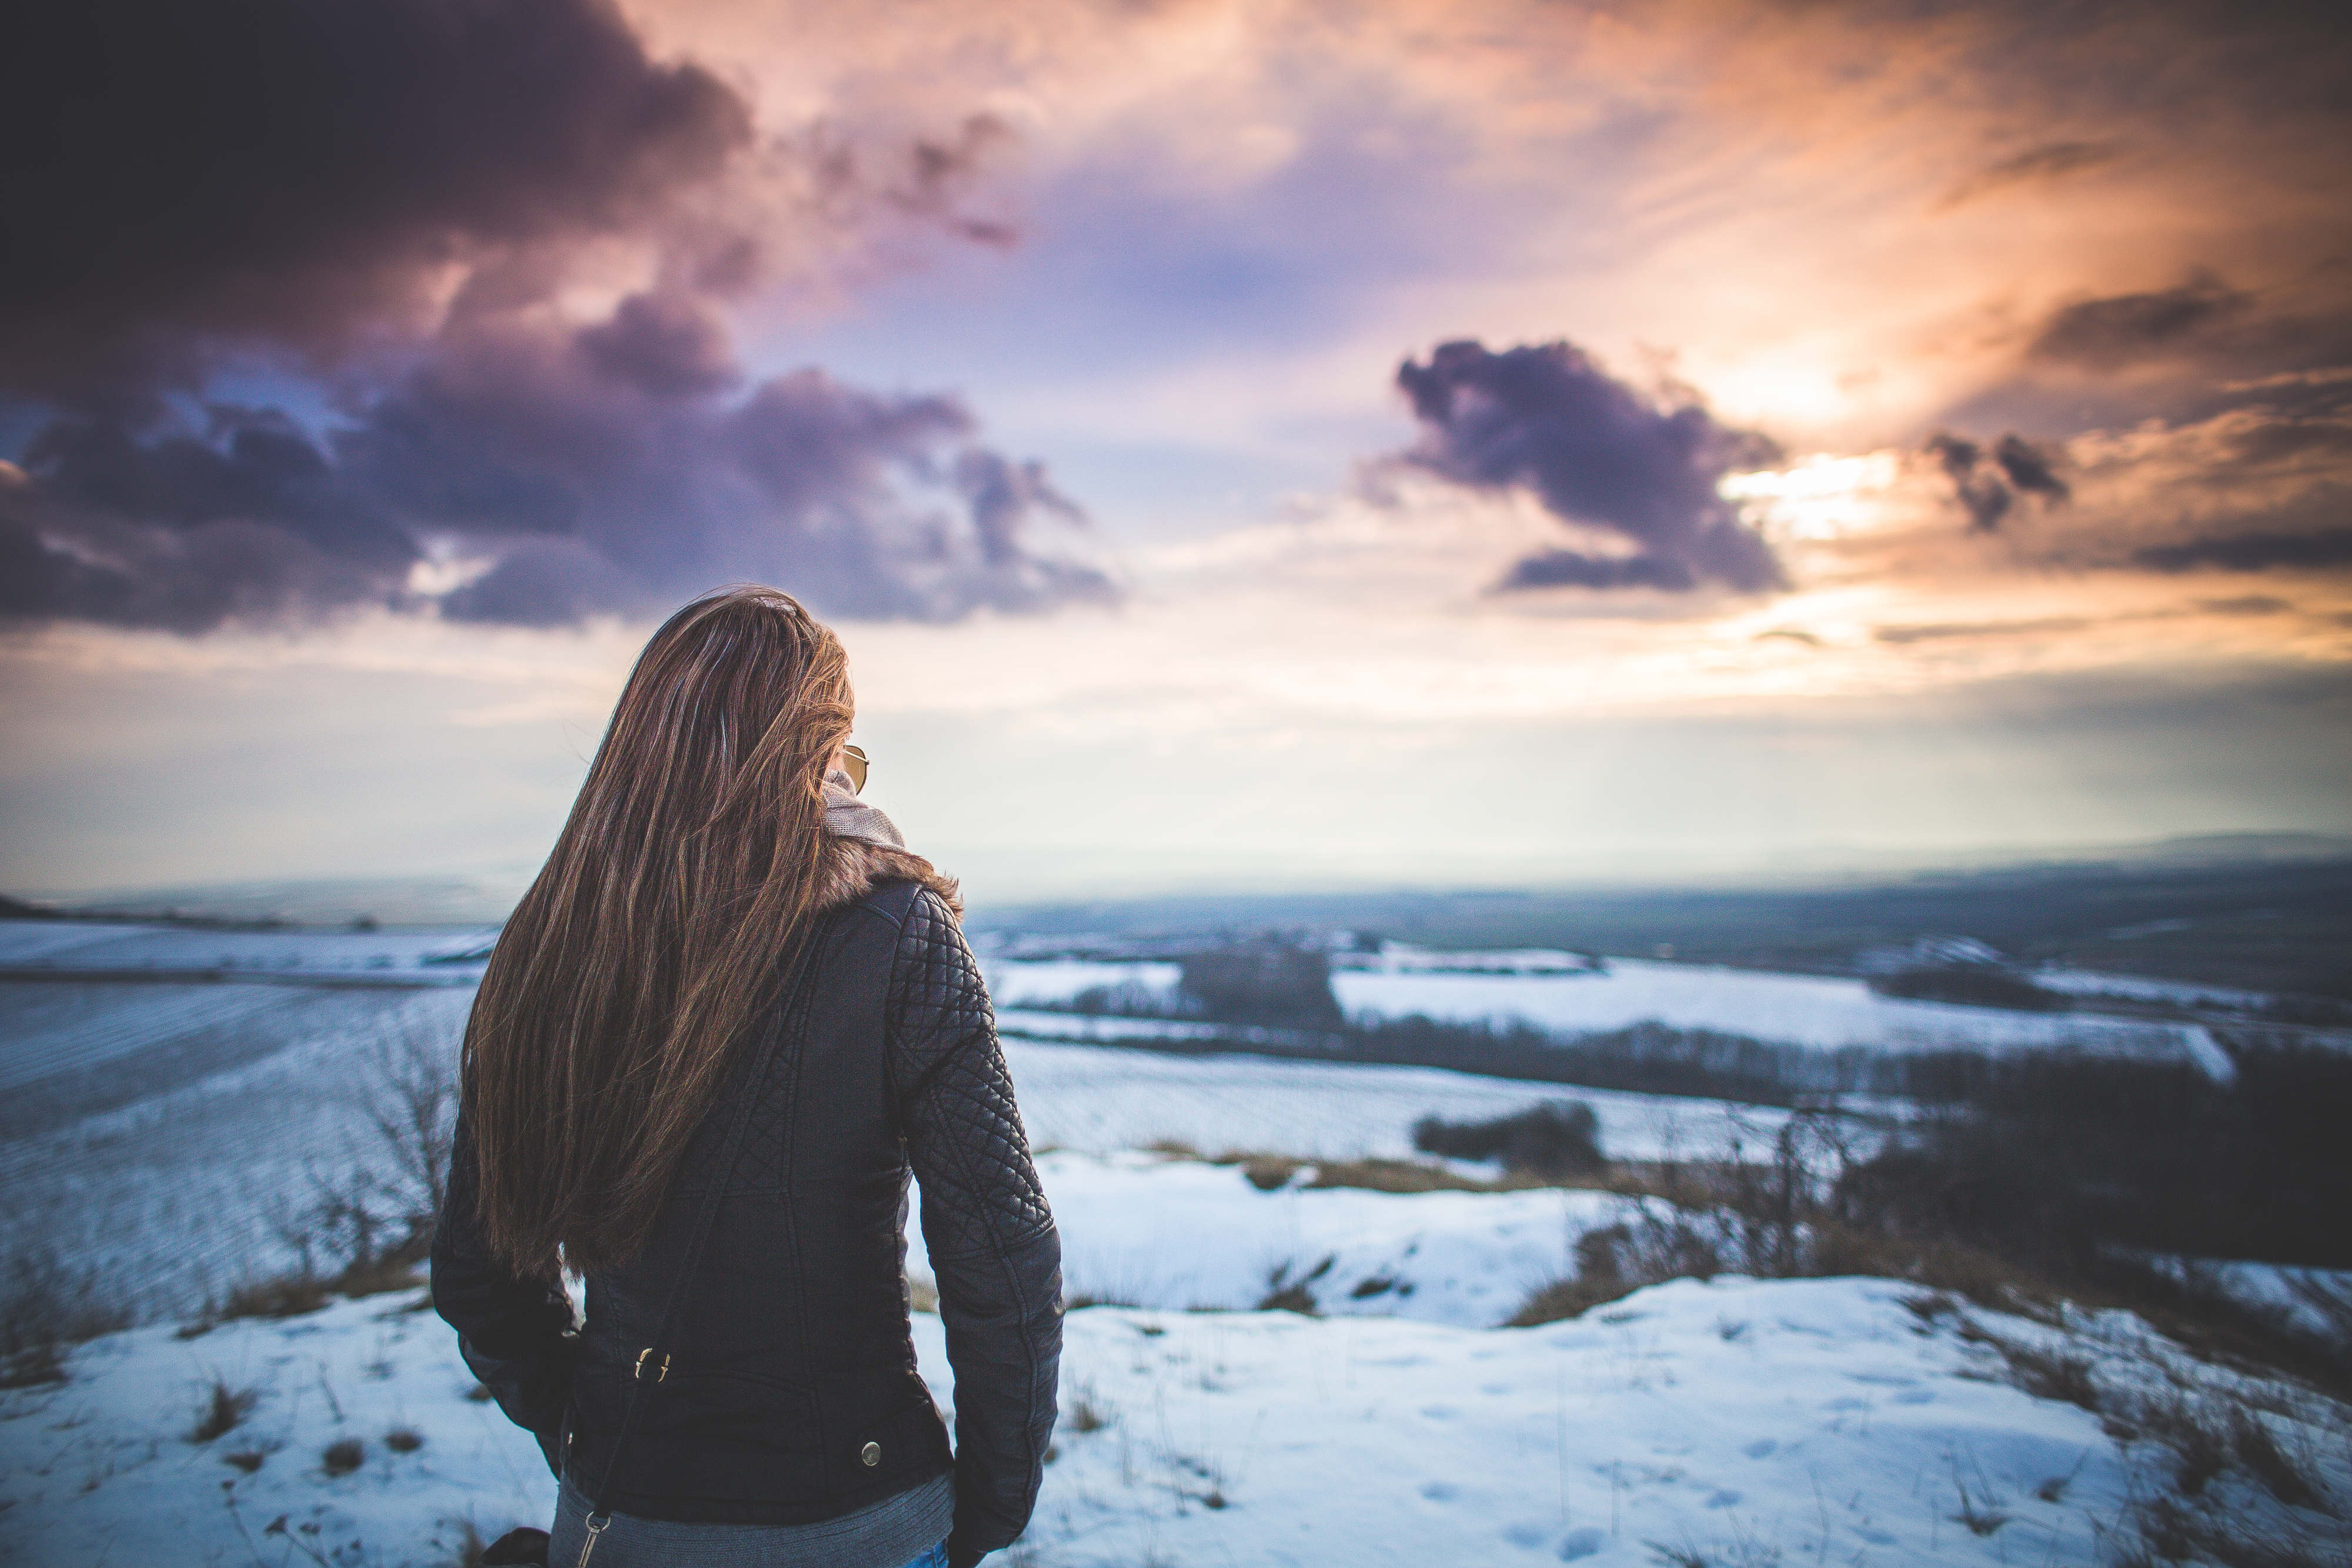 Download Girl and Fantasy Sky Scenery #1 FREE Stock Photo